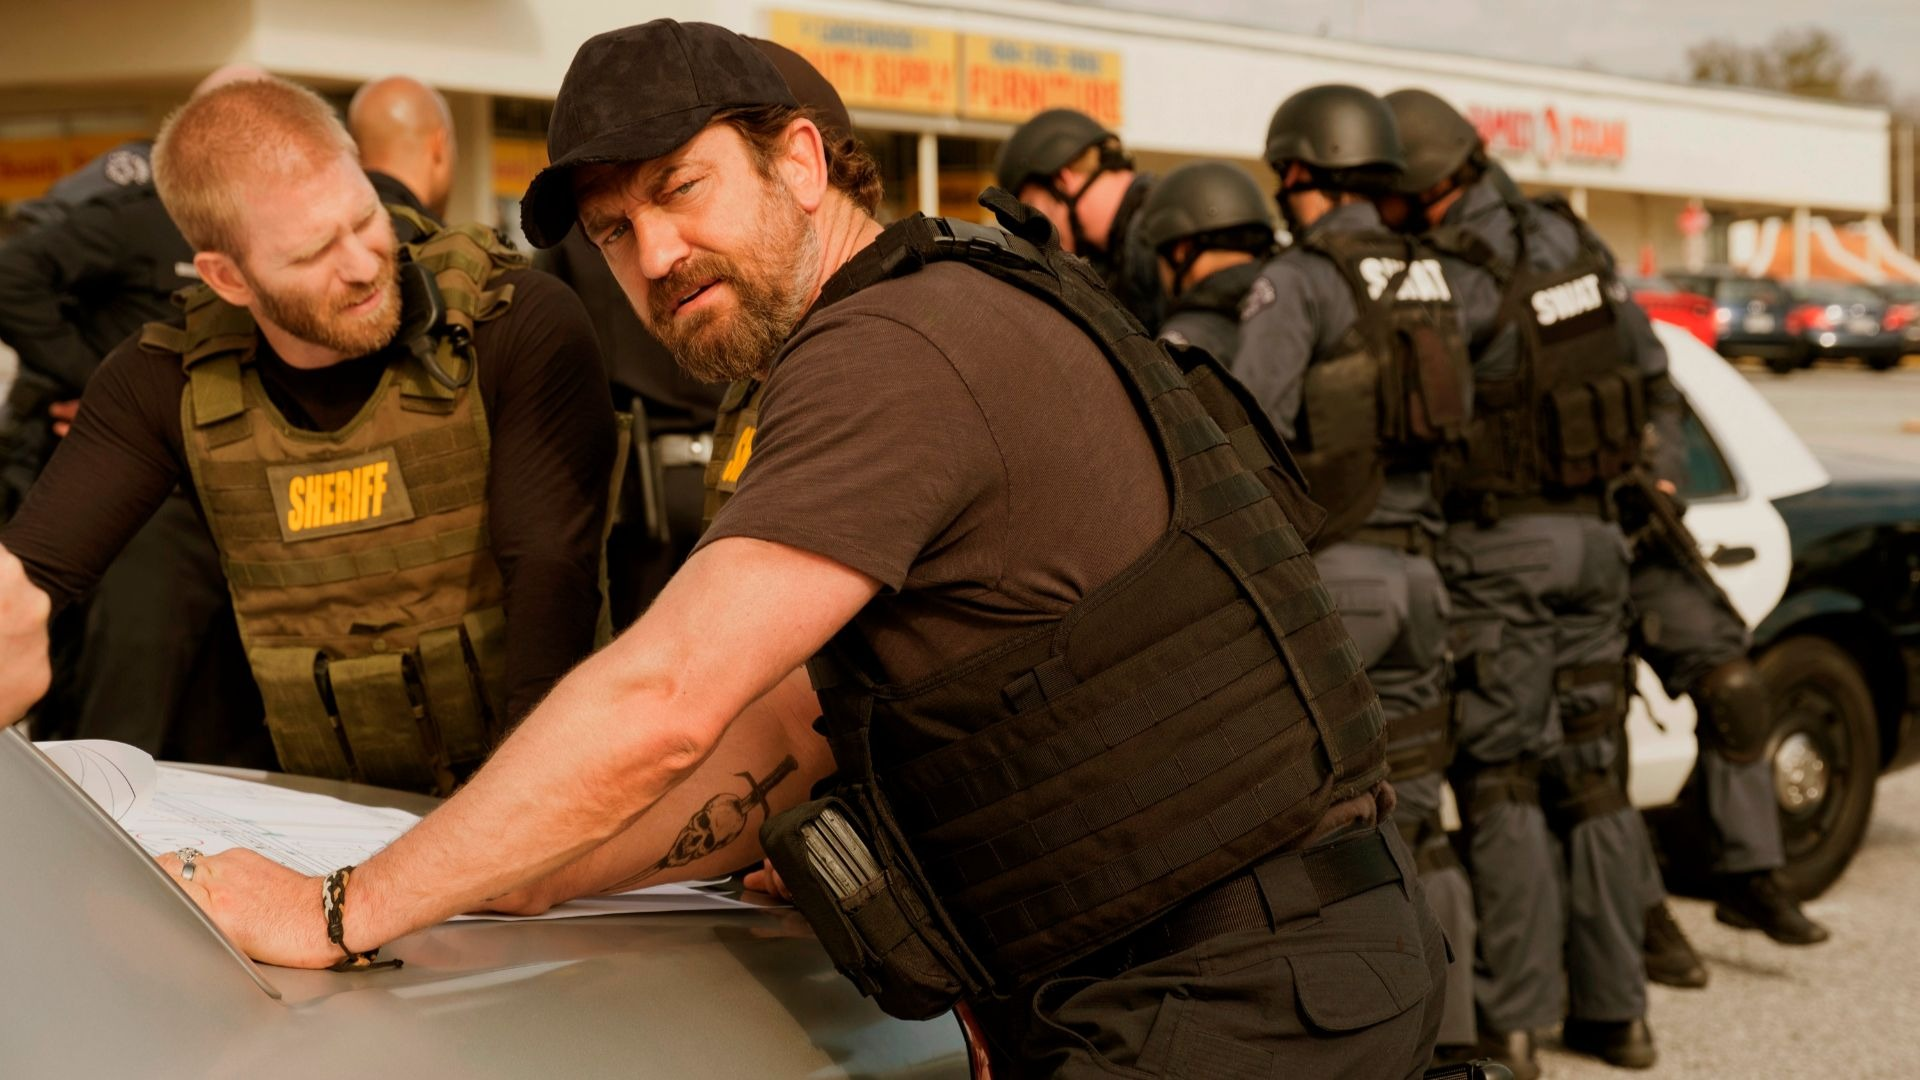 Gerard Butler in Den Of Thieves.